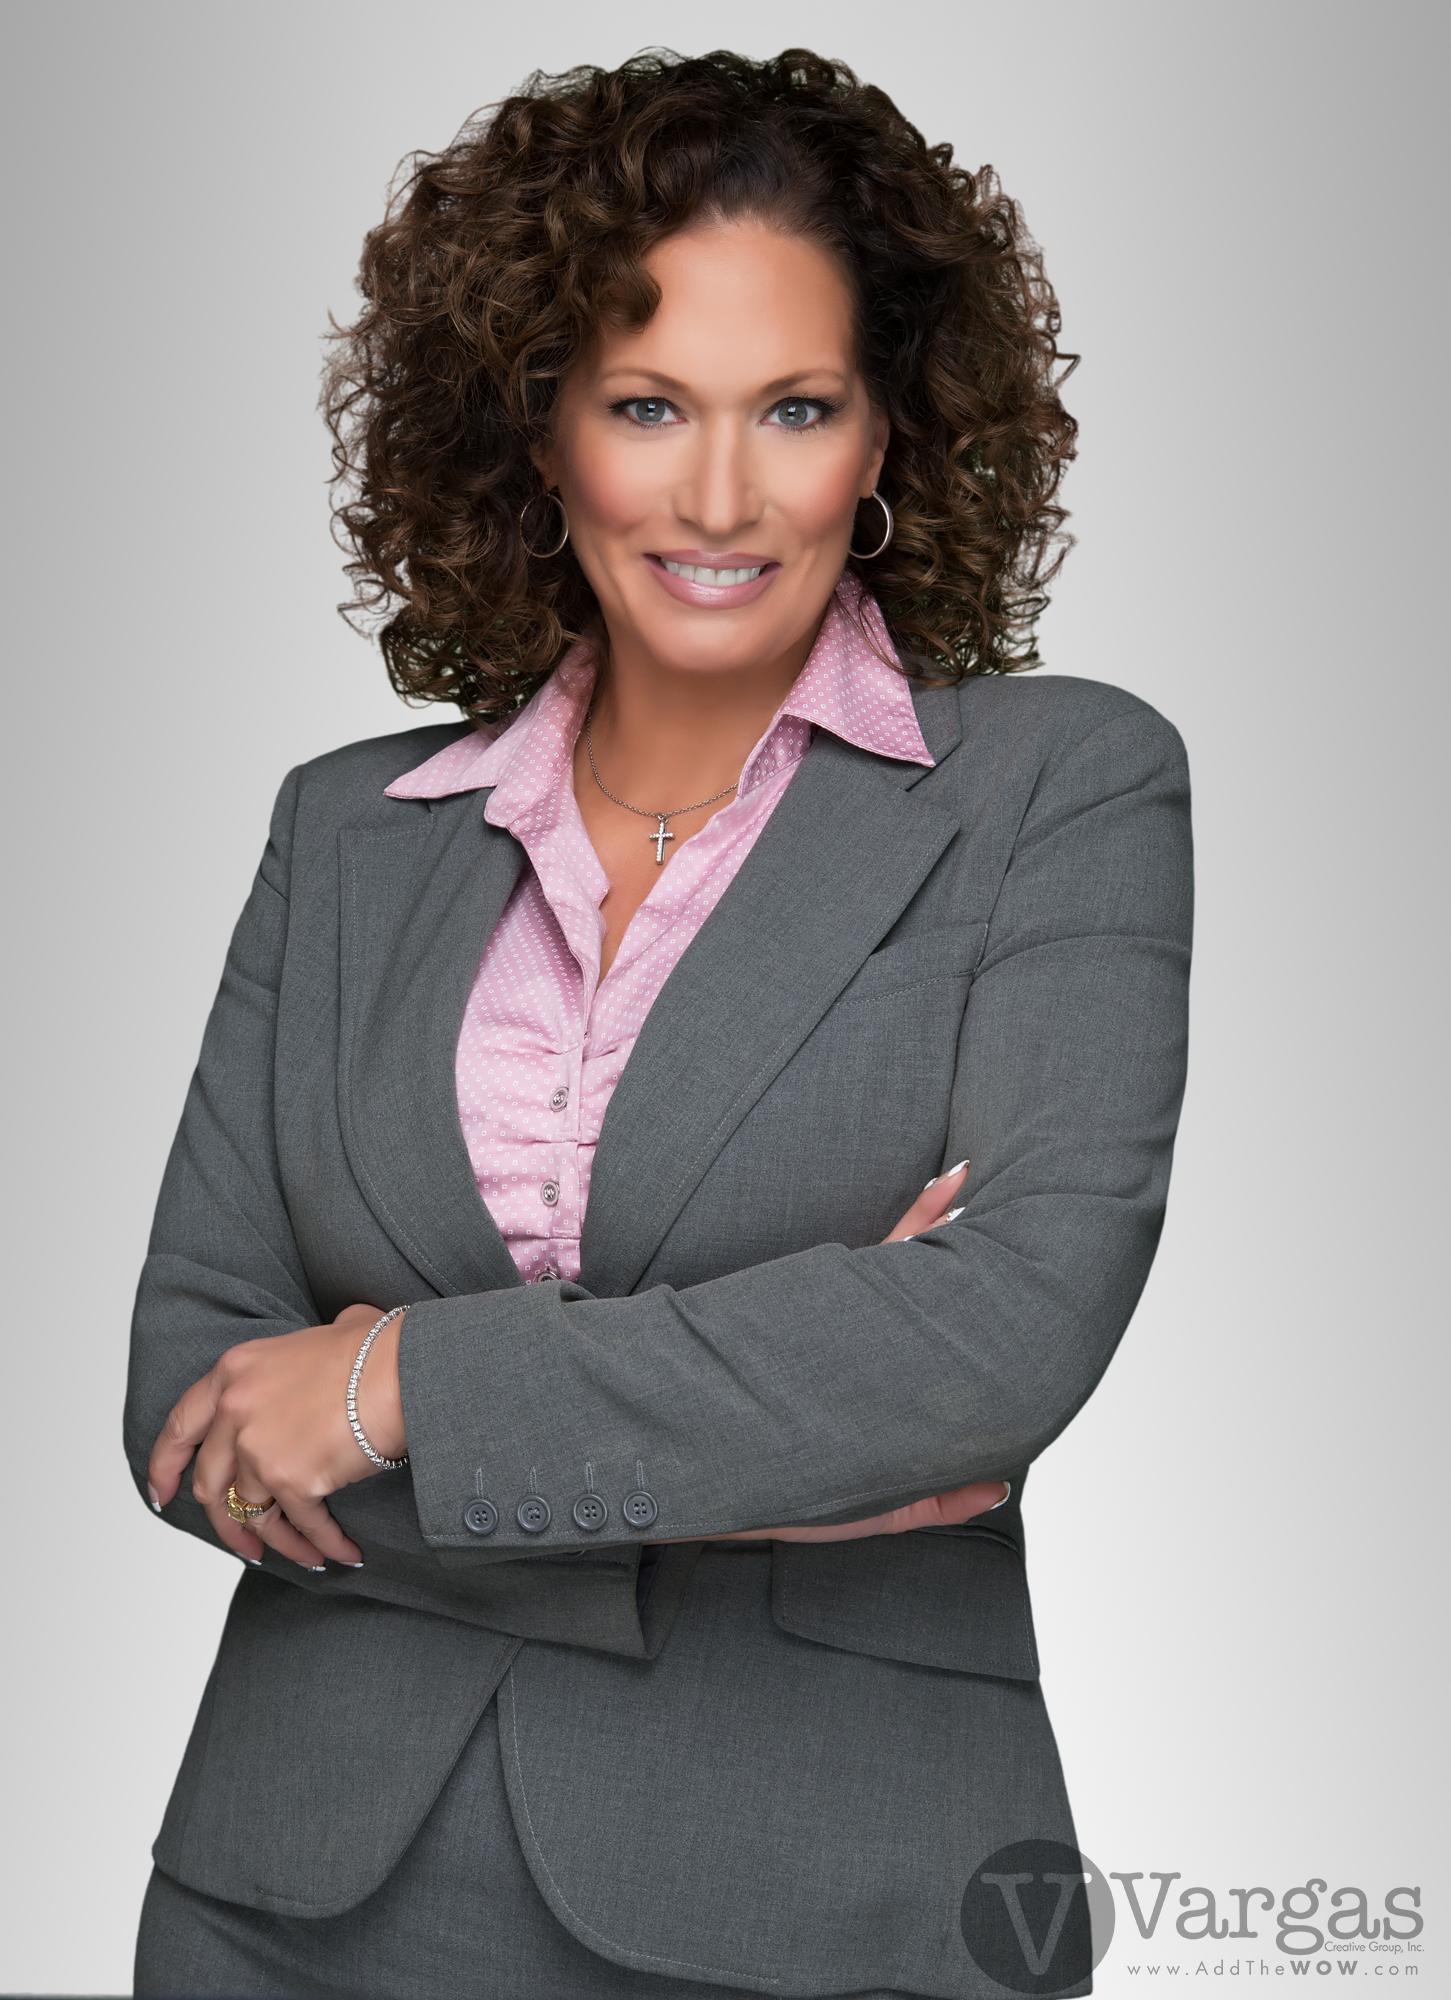 Carde_Kimberley-Realtor-Tarbell-head-shot-portrait.png